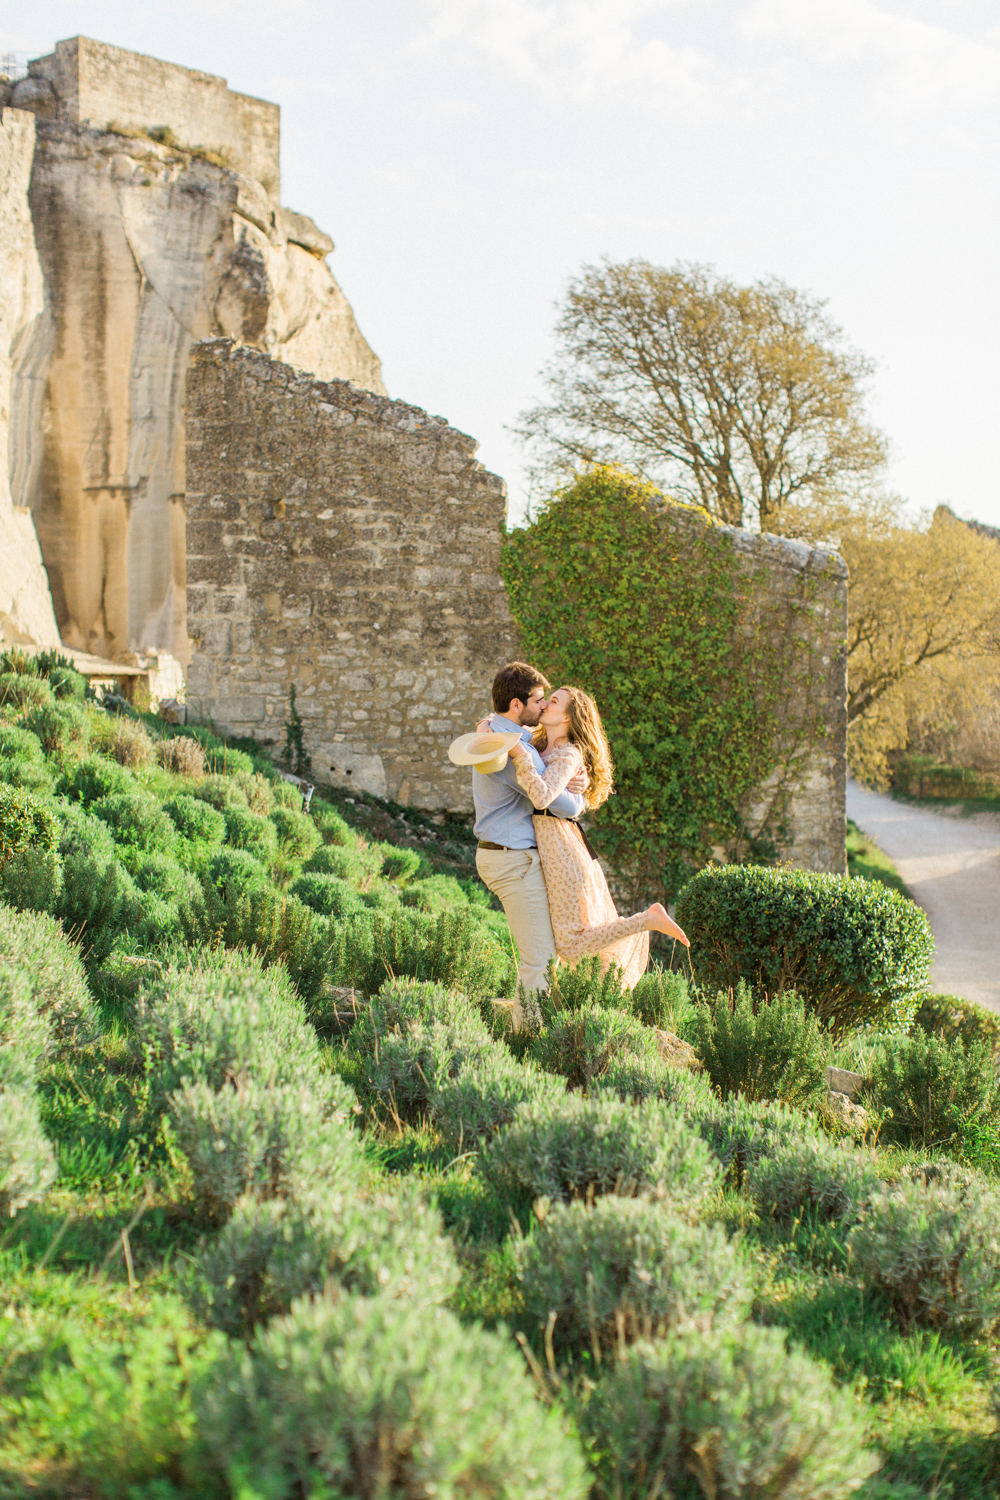 Chateau-des-Baux-de-Provence-Engagement-Session-19.jpg